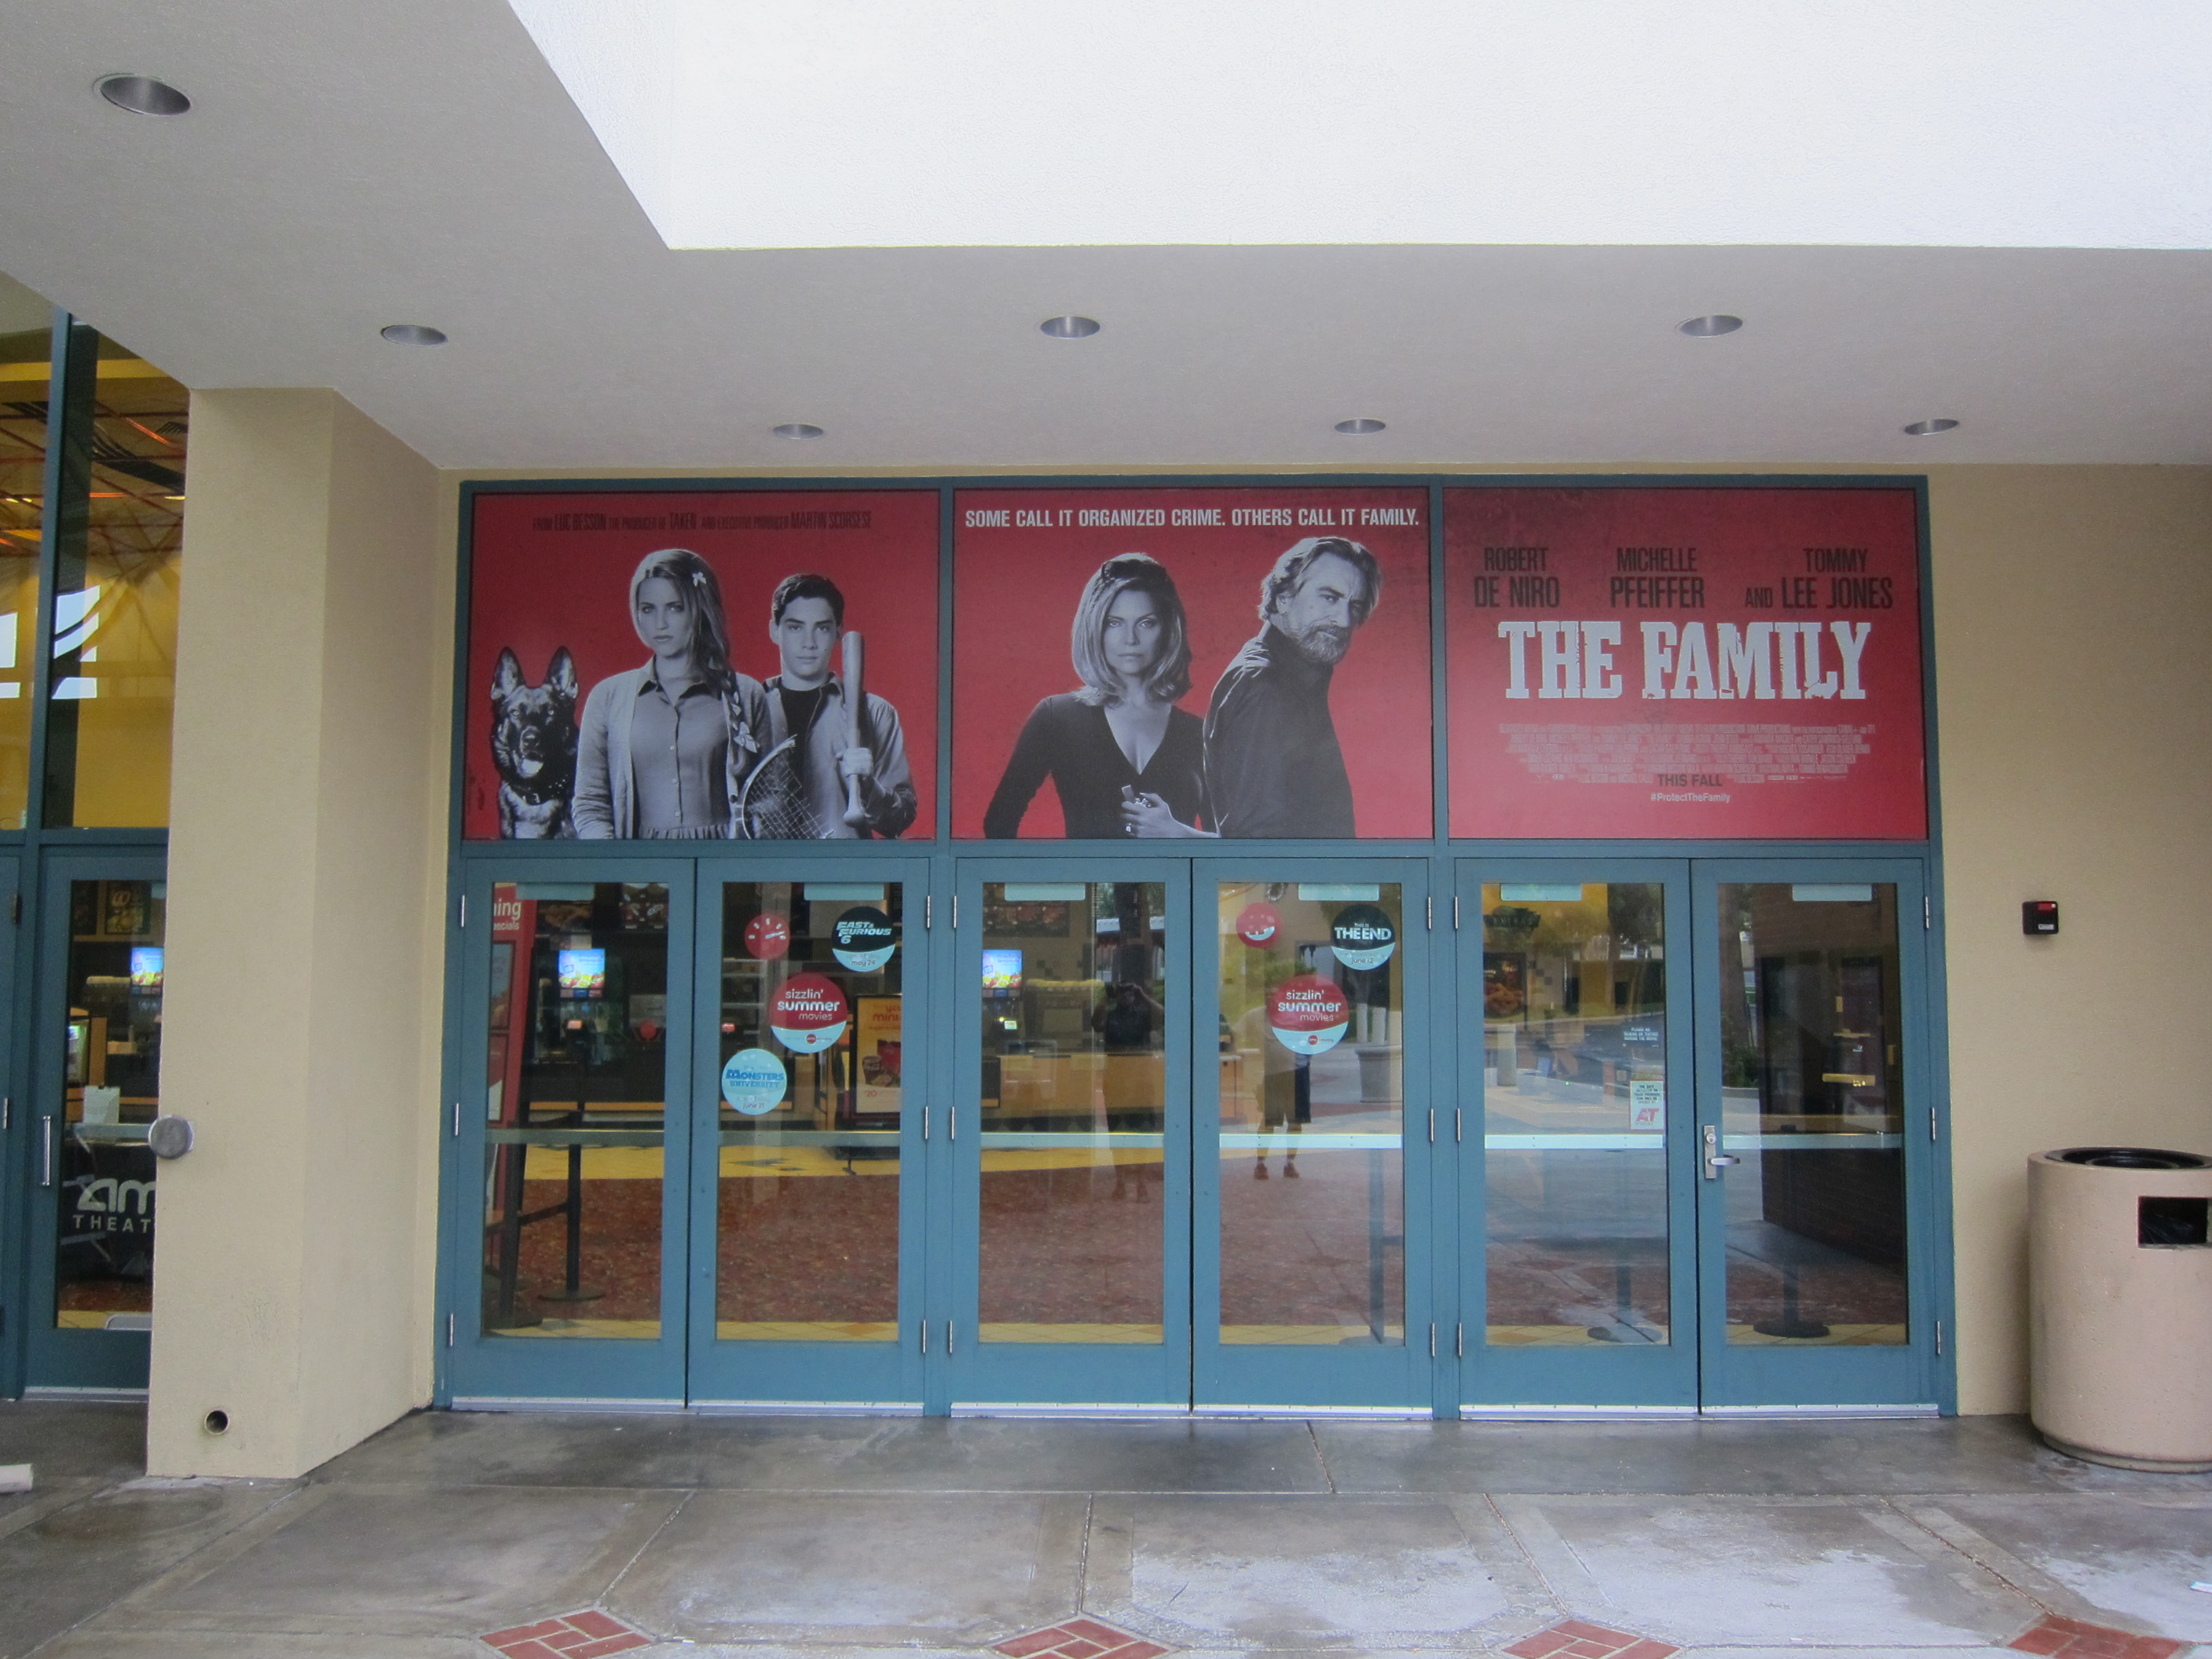 THE FAMILY at the AMC Rolling Hills Theatre in Southern California.